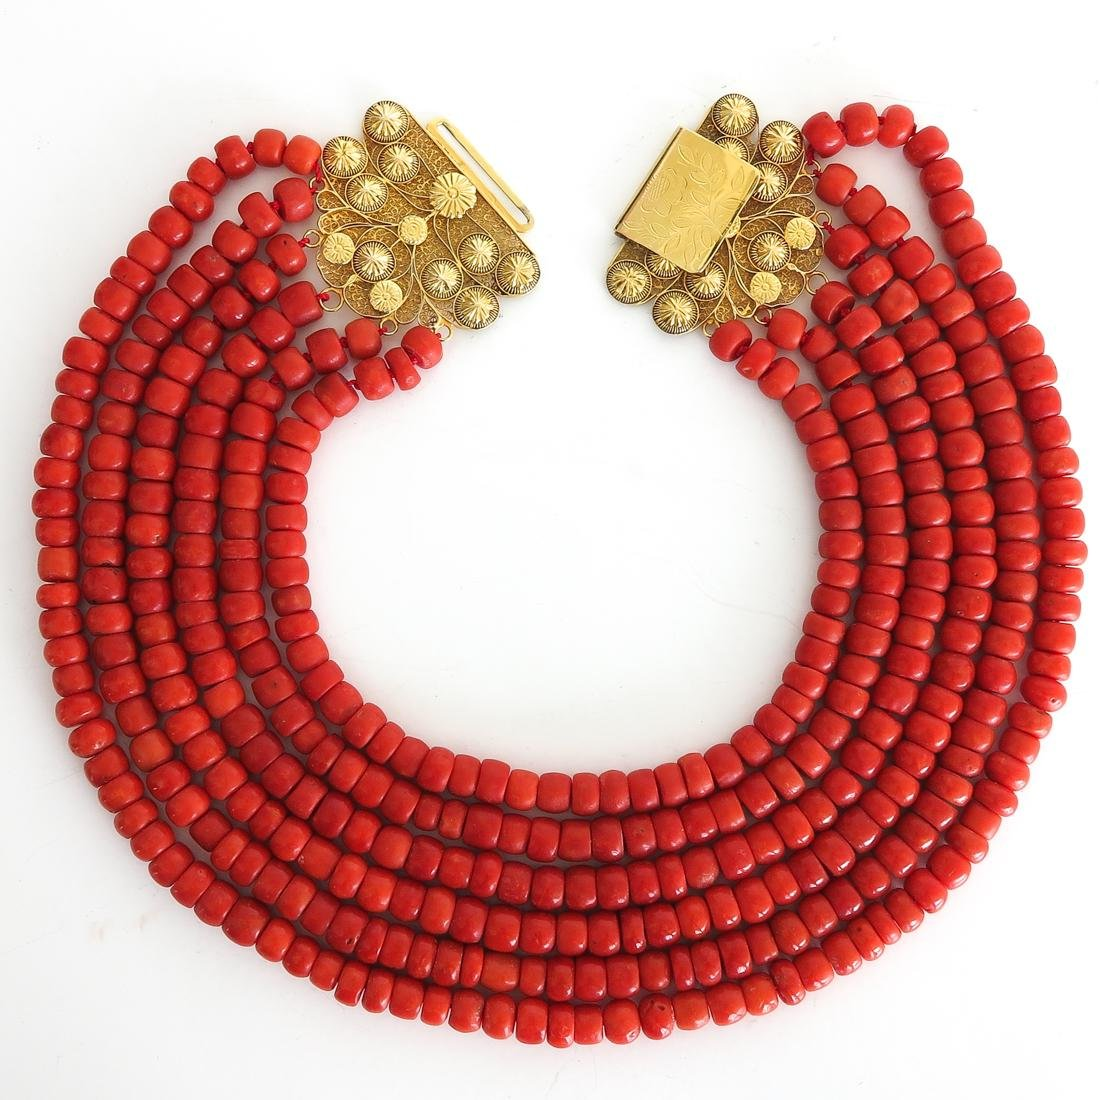 19th Century 6 Strand Red Coral Necklace 460 gram